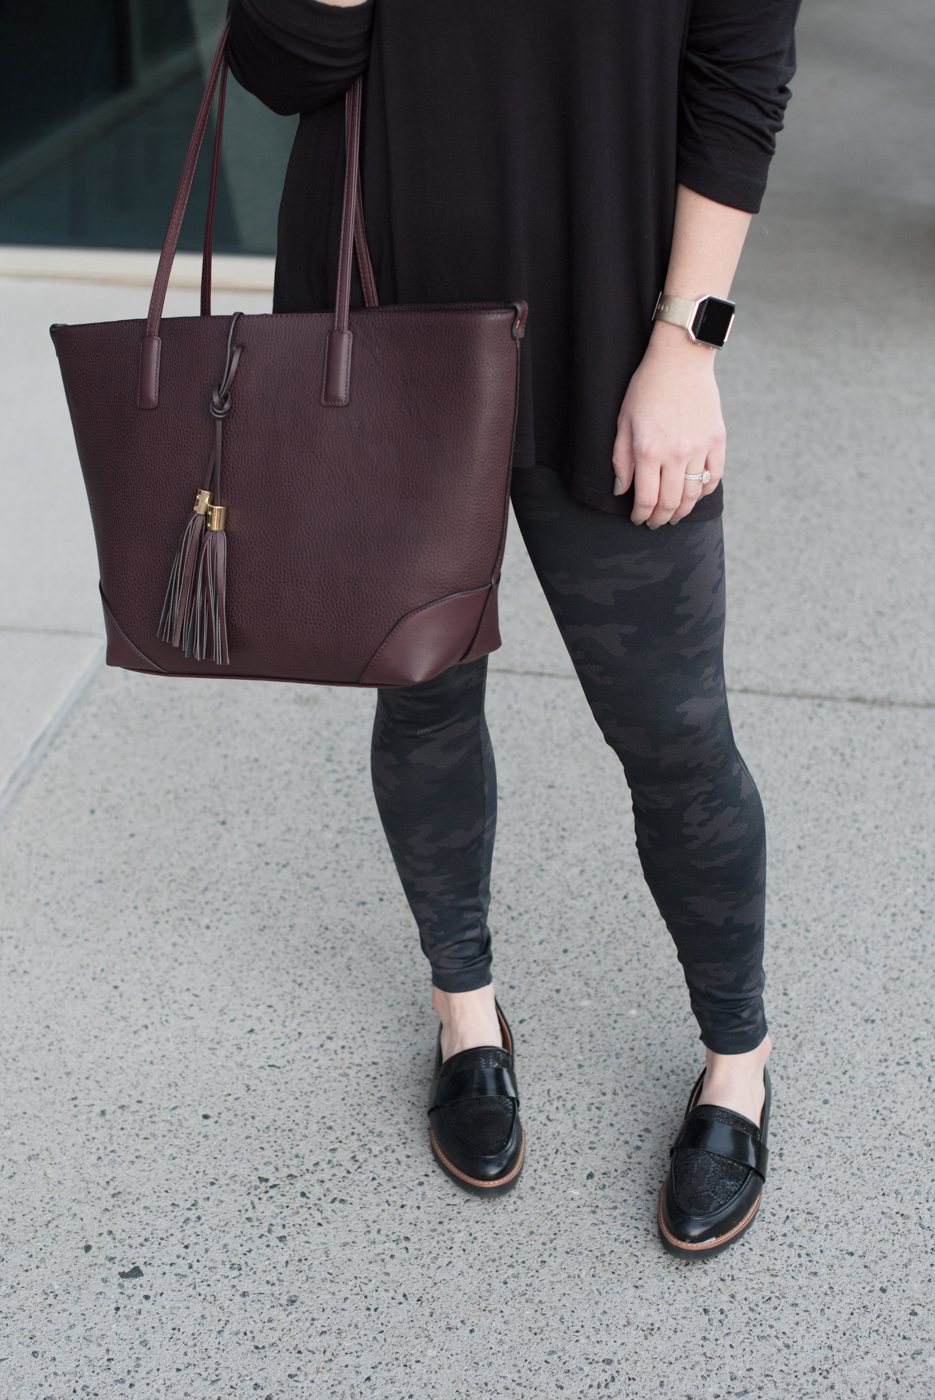 Spanx Leggings from Day to Night